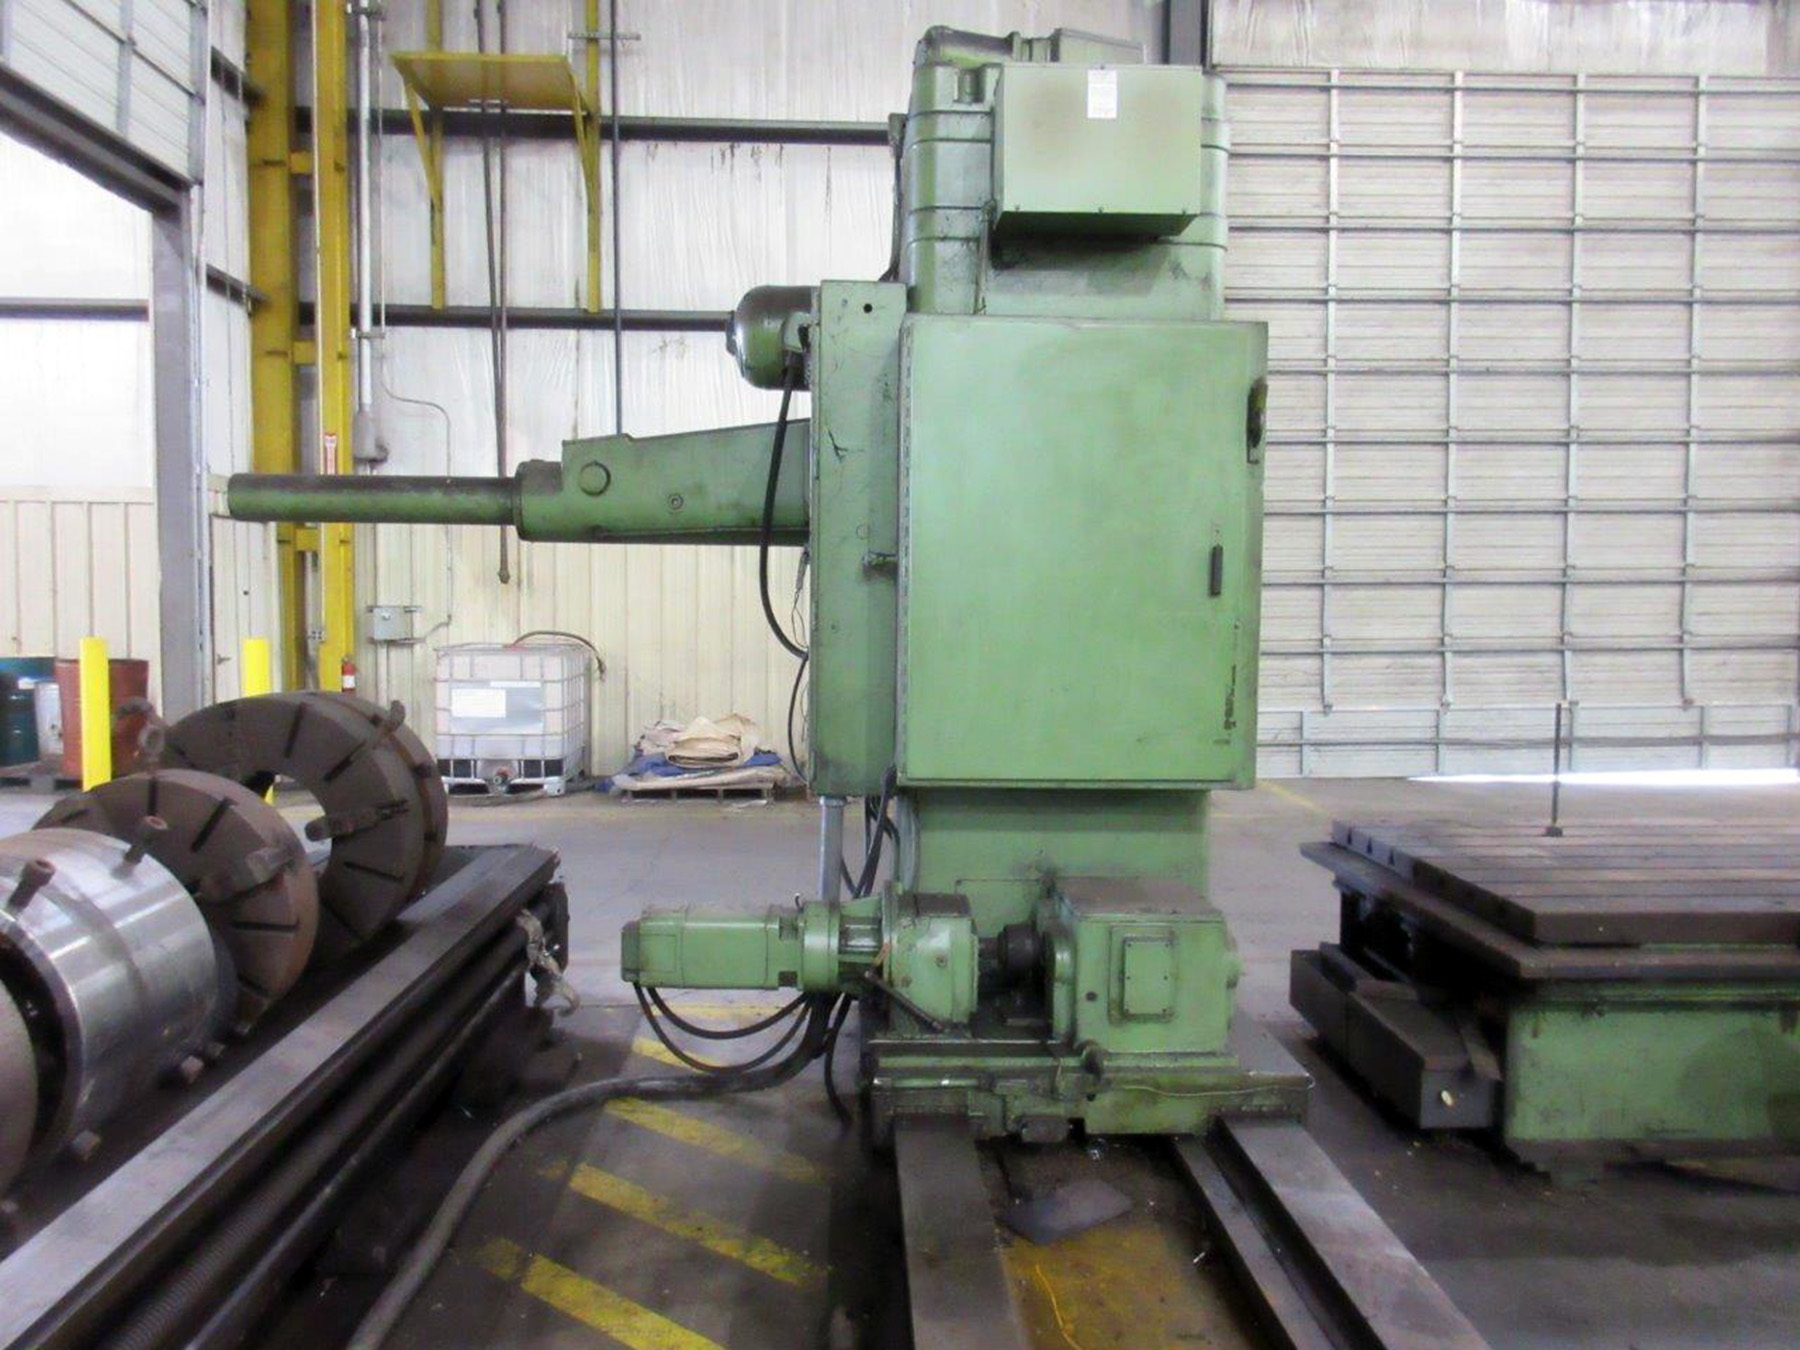 "Lot 59 - KAUKAUNA MDL. 3040 TABLE TYPE HORIZONTAL BORING MILL, 4"" spdl. dia., 60"" x 120"" T-slotted table, 96"""